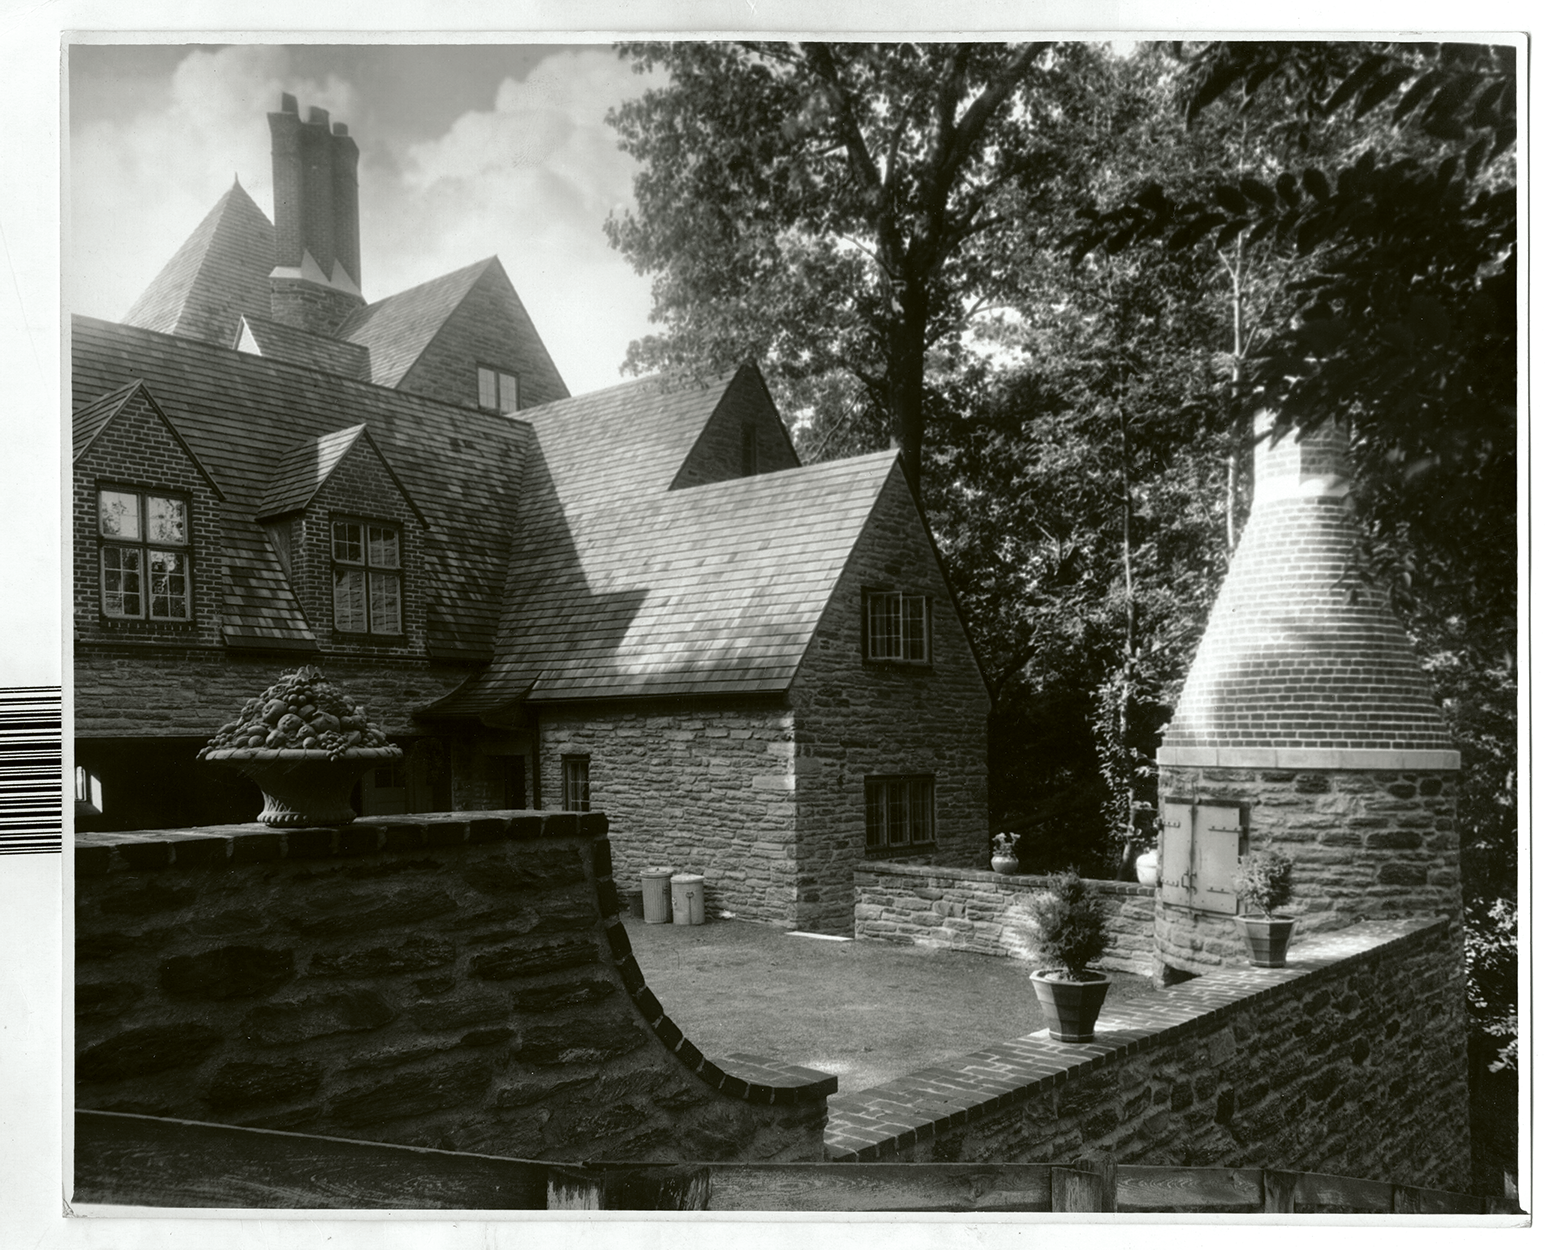 A view of the Abraham T. Malmed Residence, Germantown, PA, Circa 1929, Mellor, Meigs & Howe Collection, Athenaeum of Philadelphia